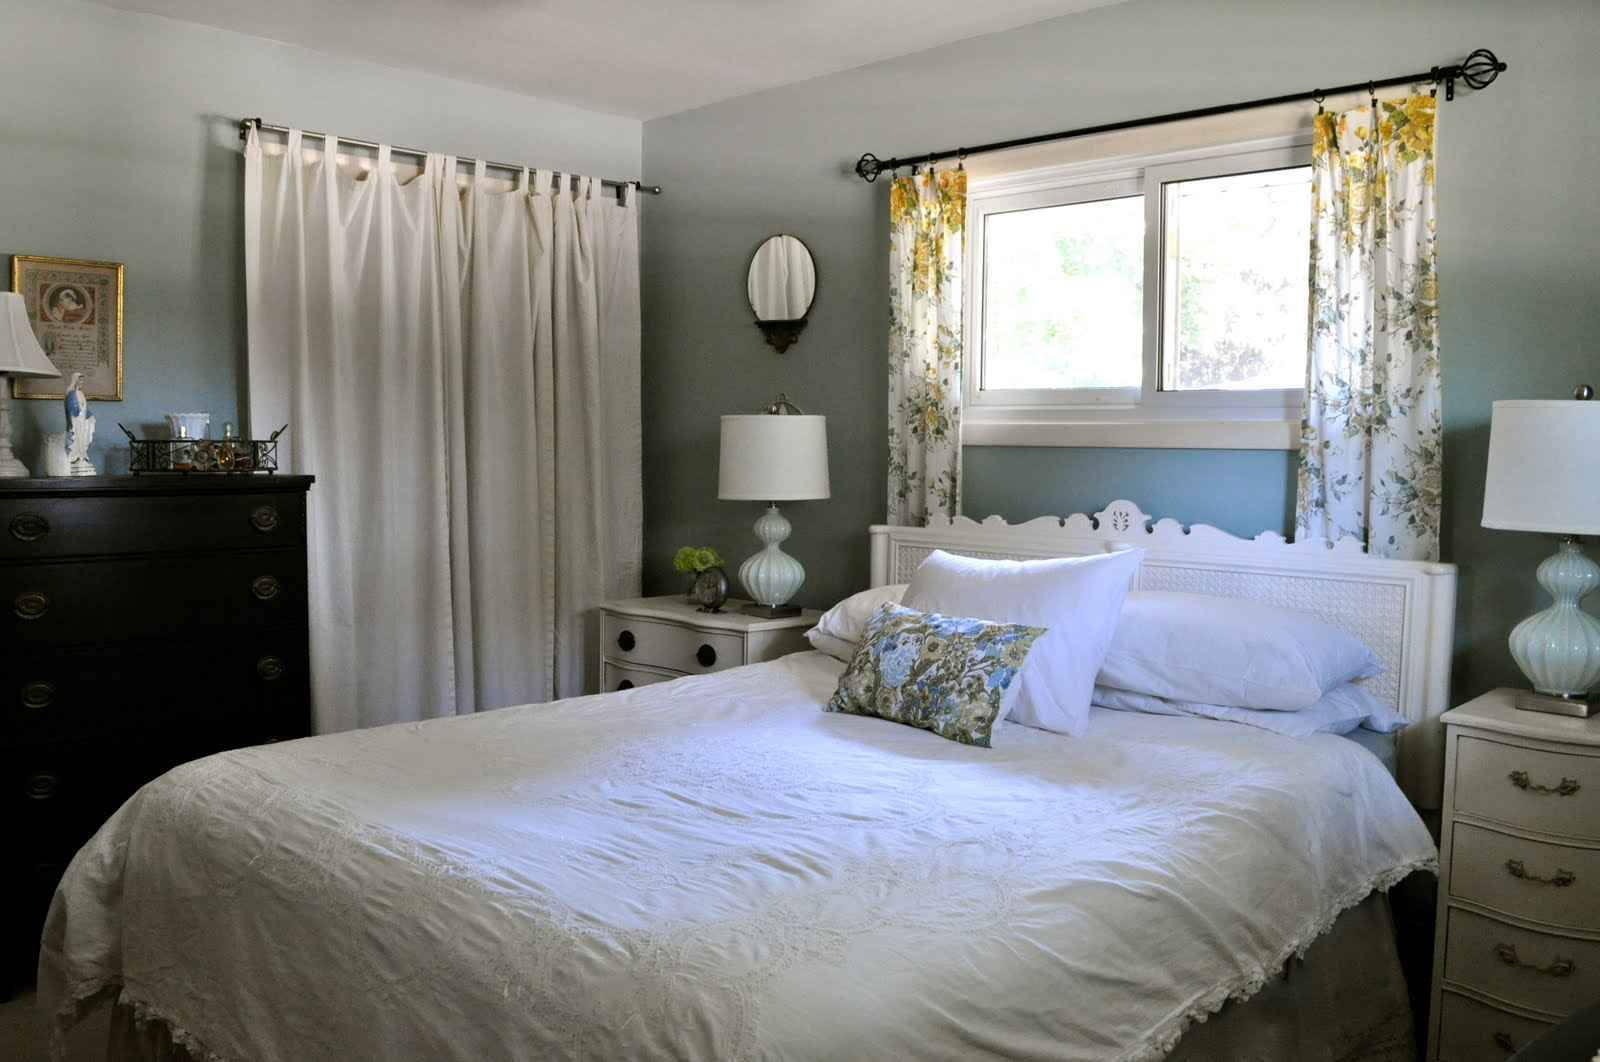 an oldie but goodie bedroom makeover jennifer rizzo an oldie but goodie bedroom makeover